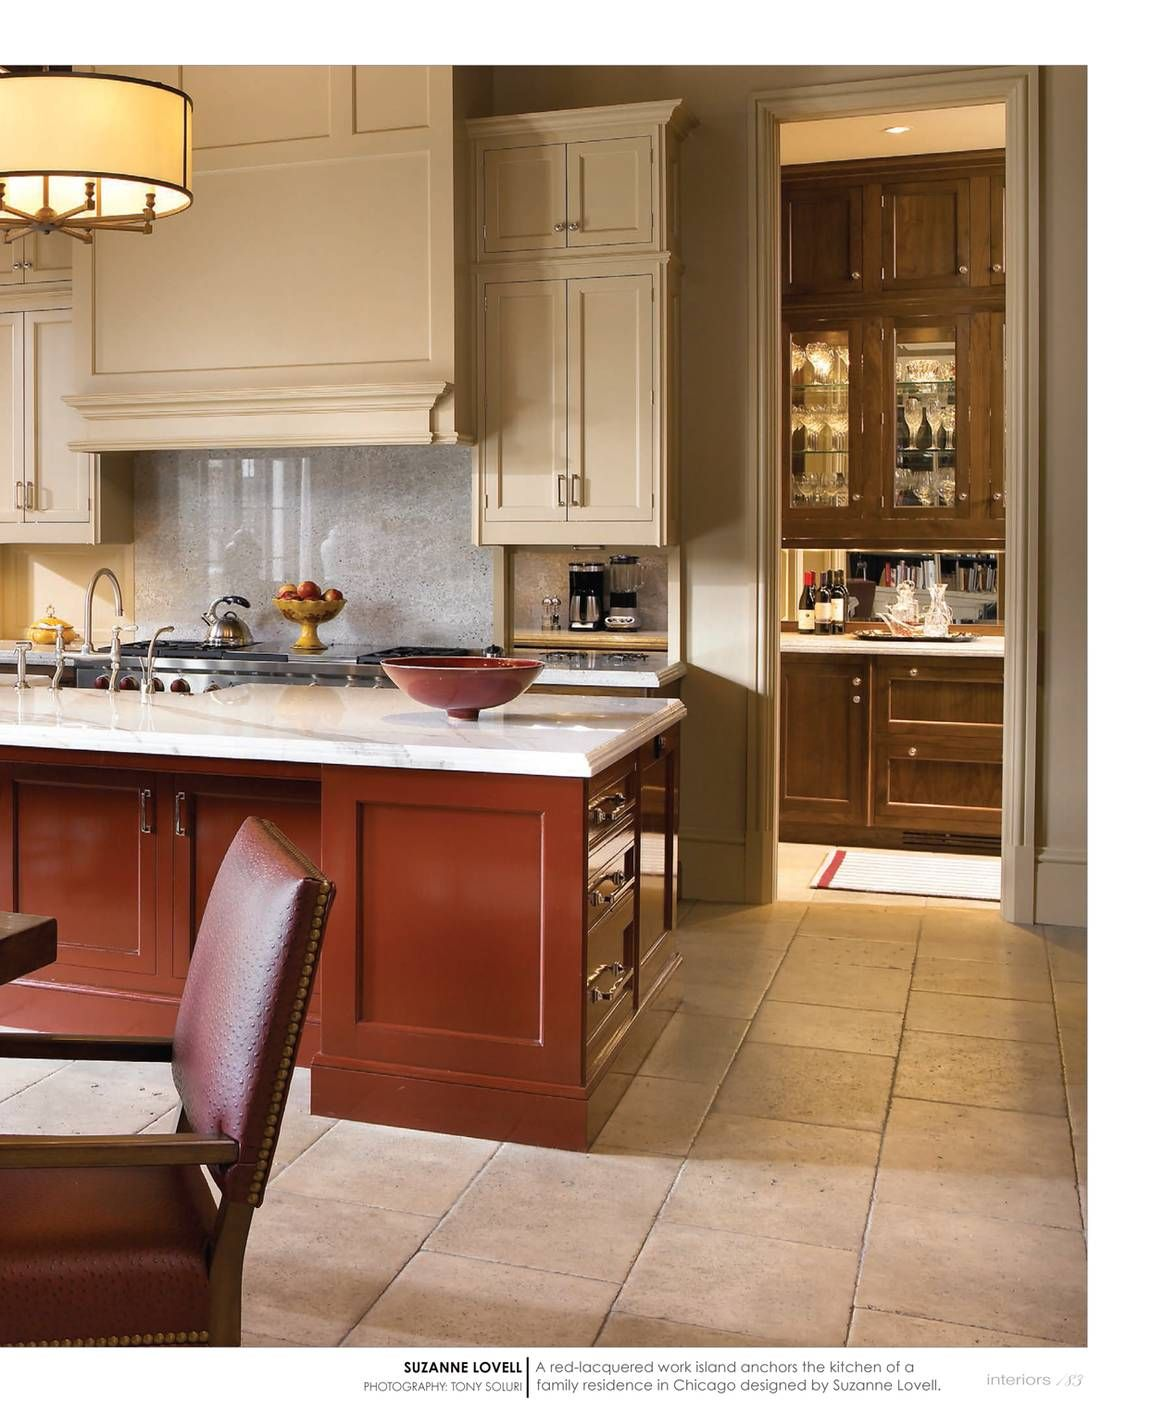 burgundy island (With images) | Kitchen inspirations ...